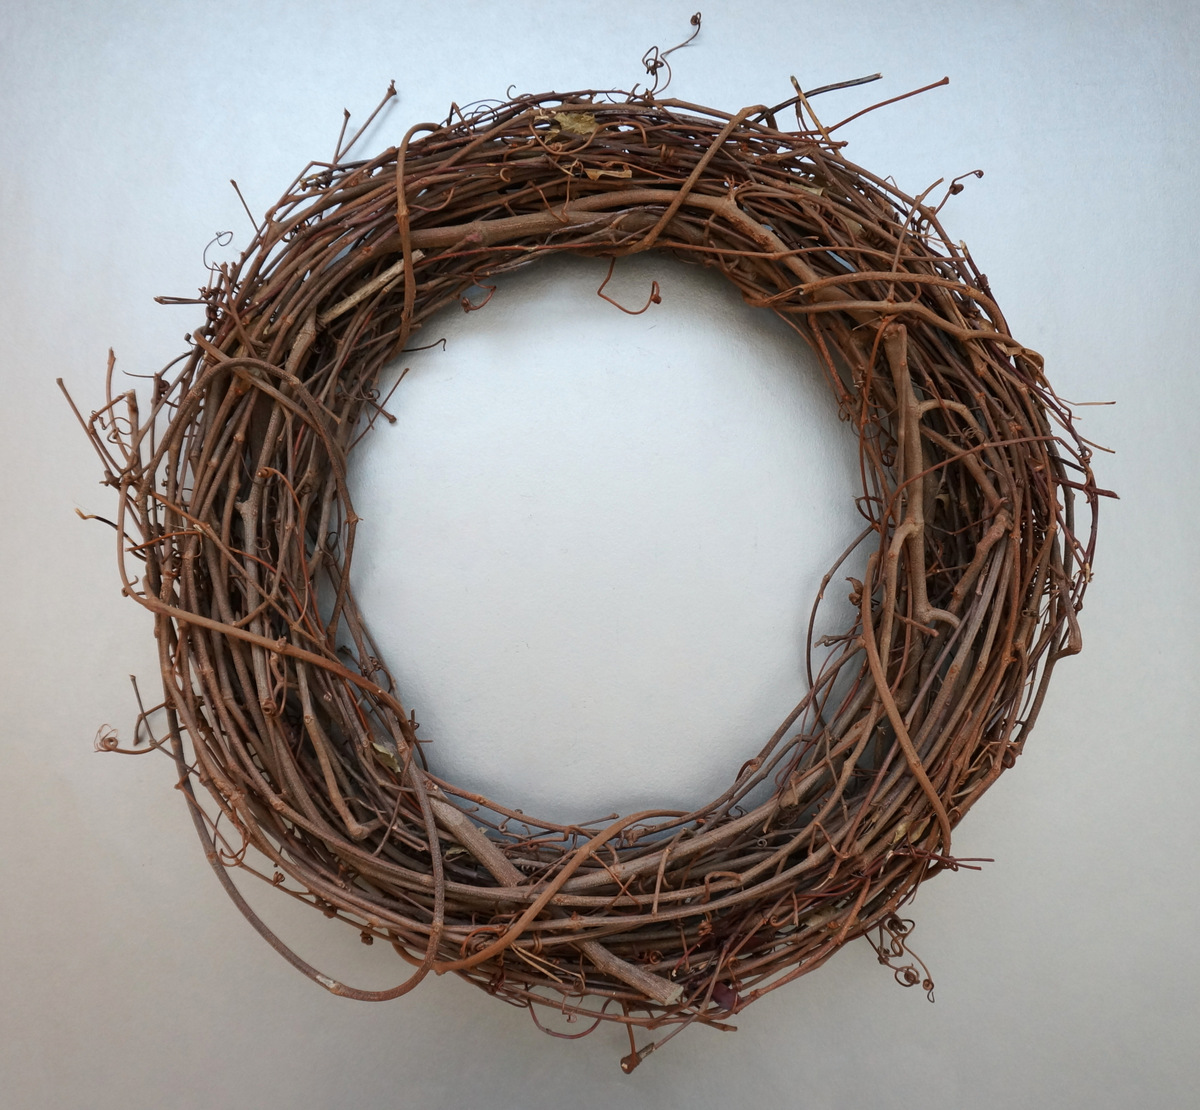 A grapevine wreath